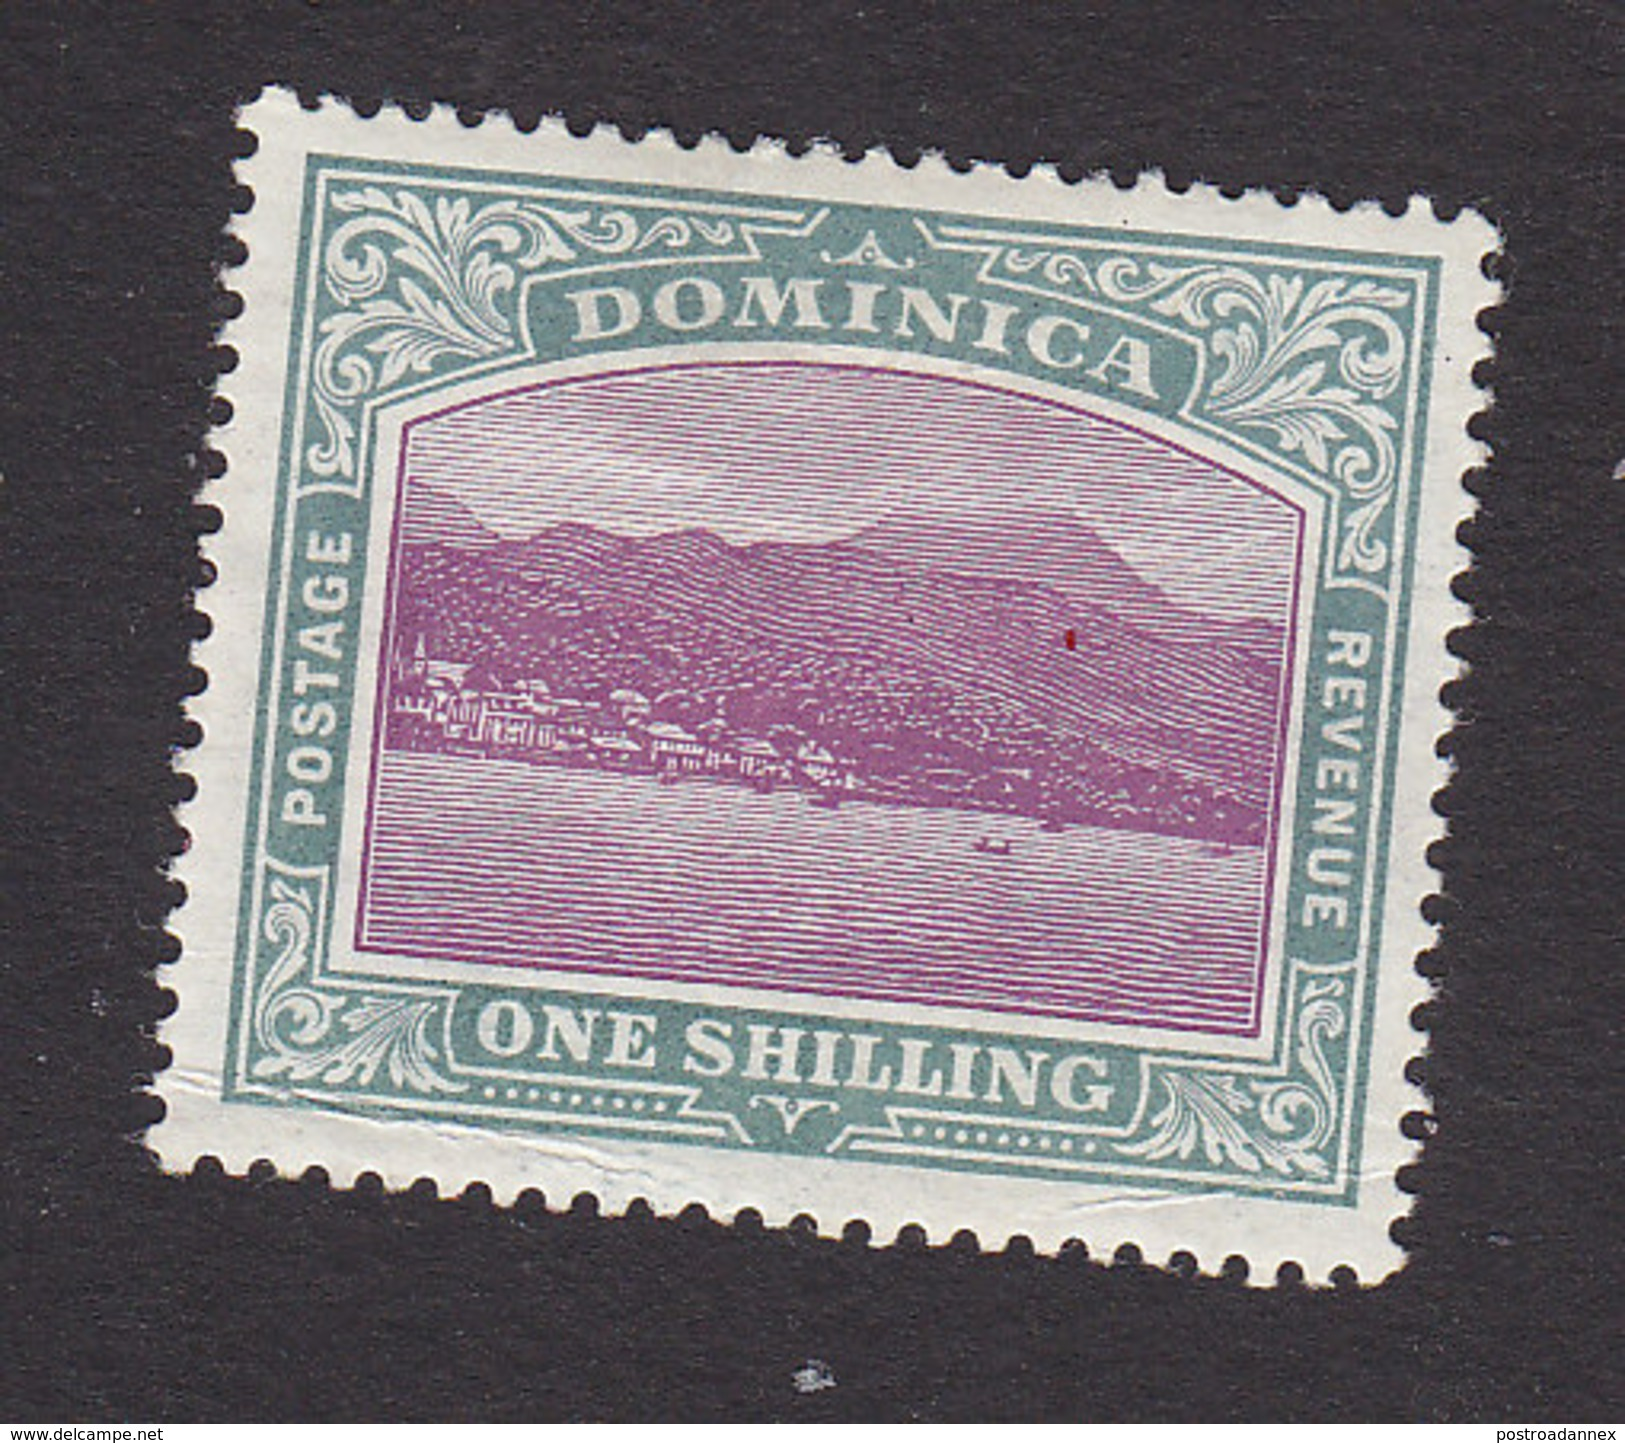 Dominica, Scott #31, Mint Hinged, Roseau Capital Of Dominica, Issued 1903 - Dominica (...-1978)